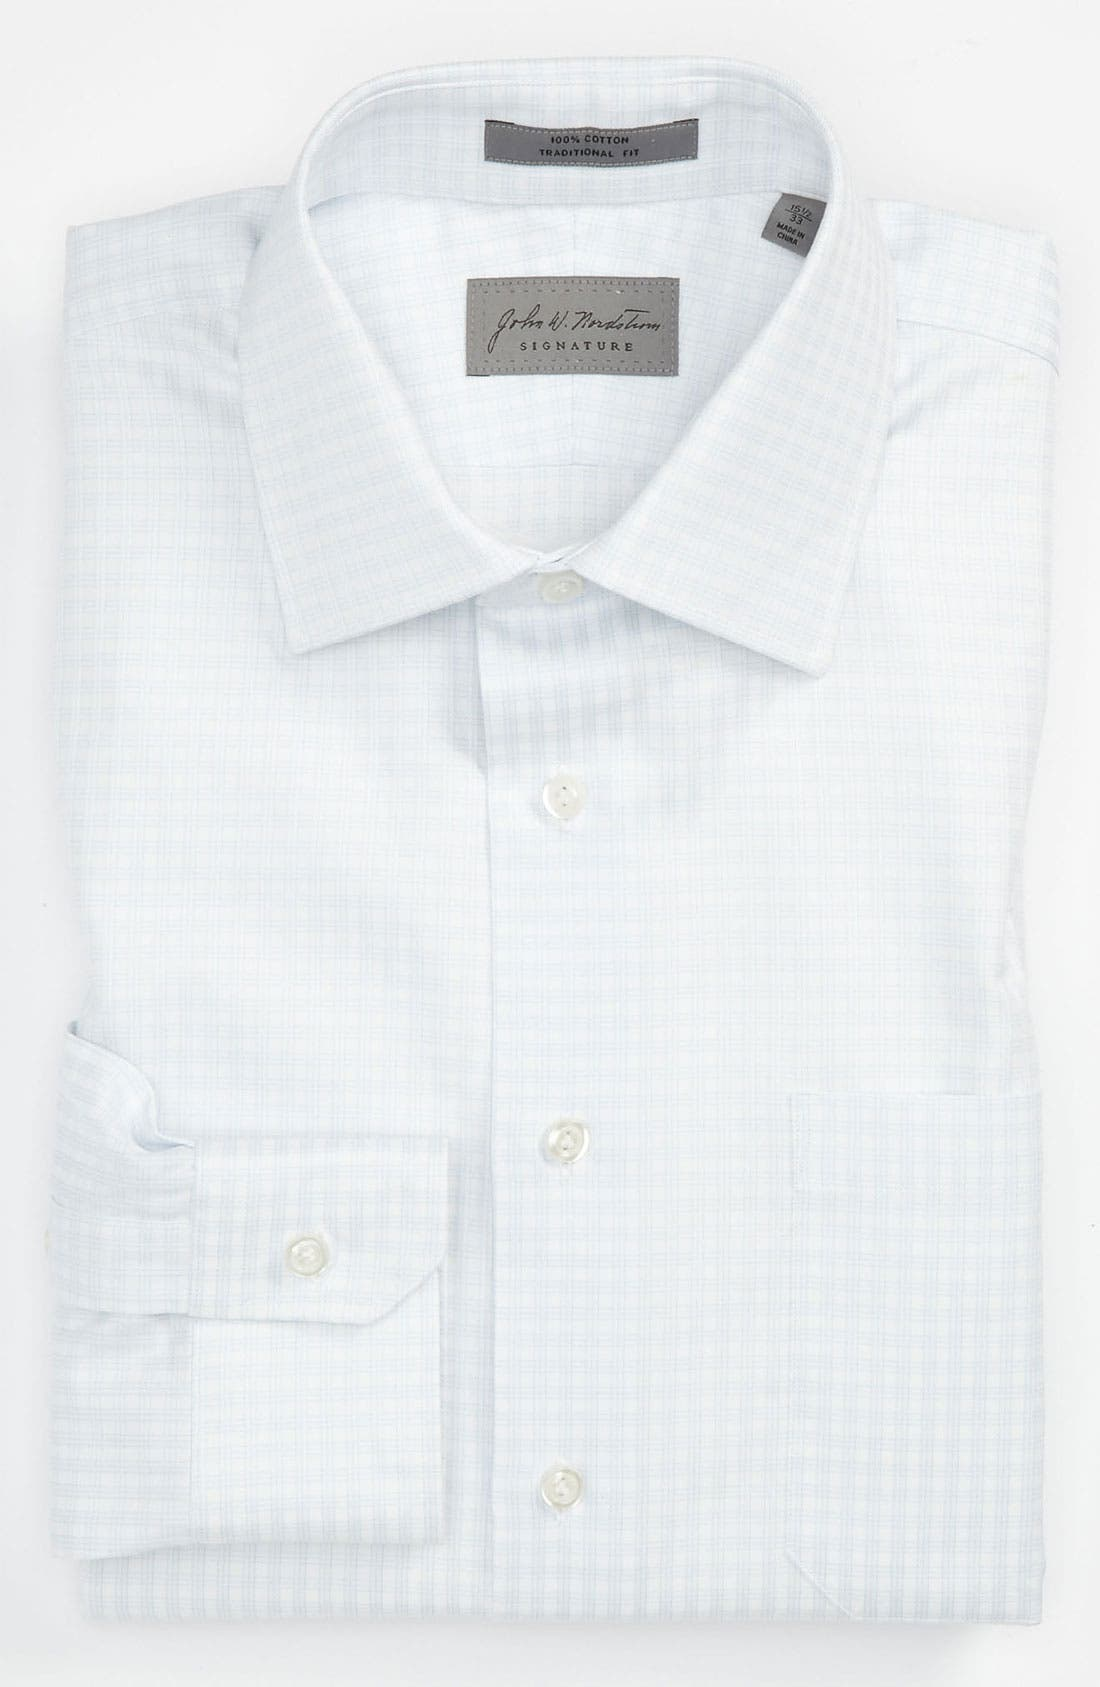 Traditional Fit Dress Shirt, Main, color, 100